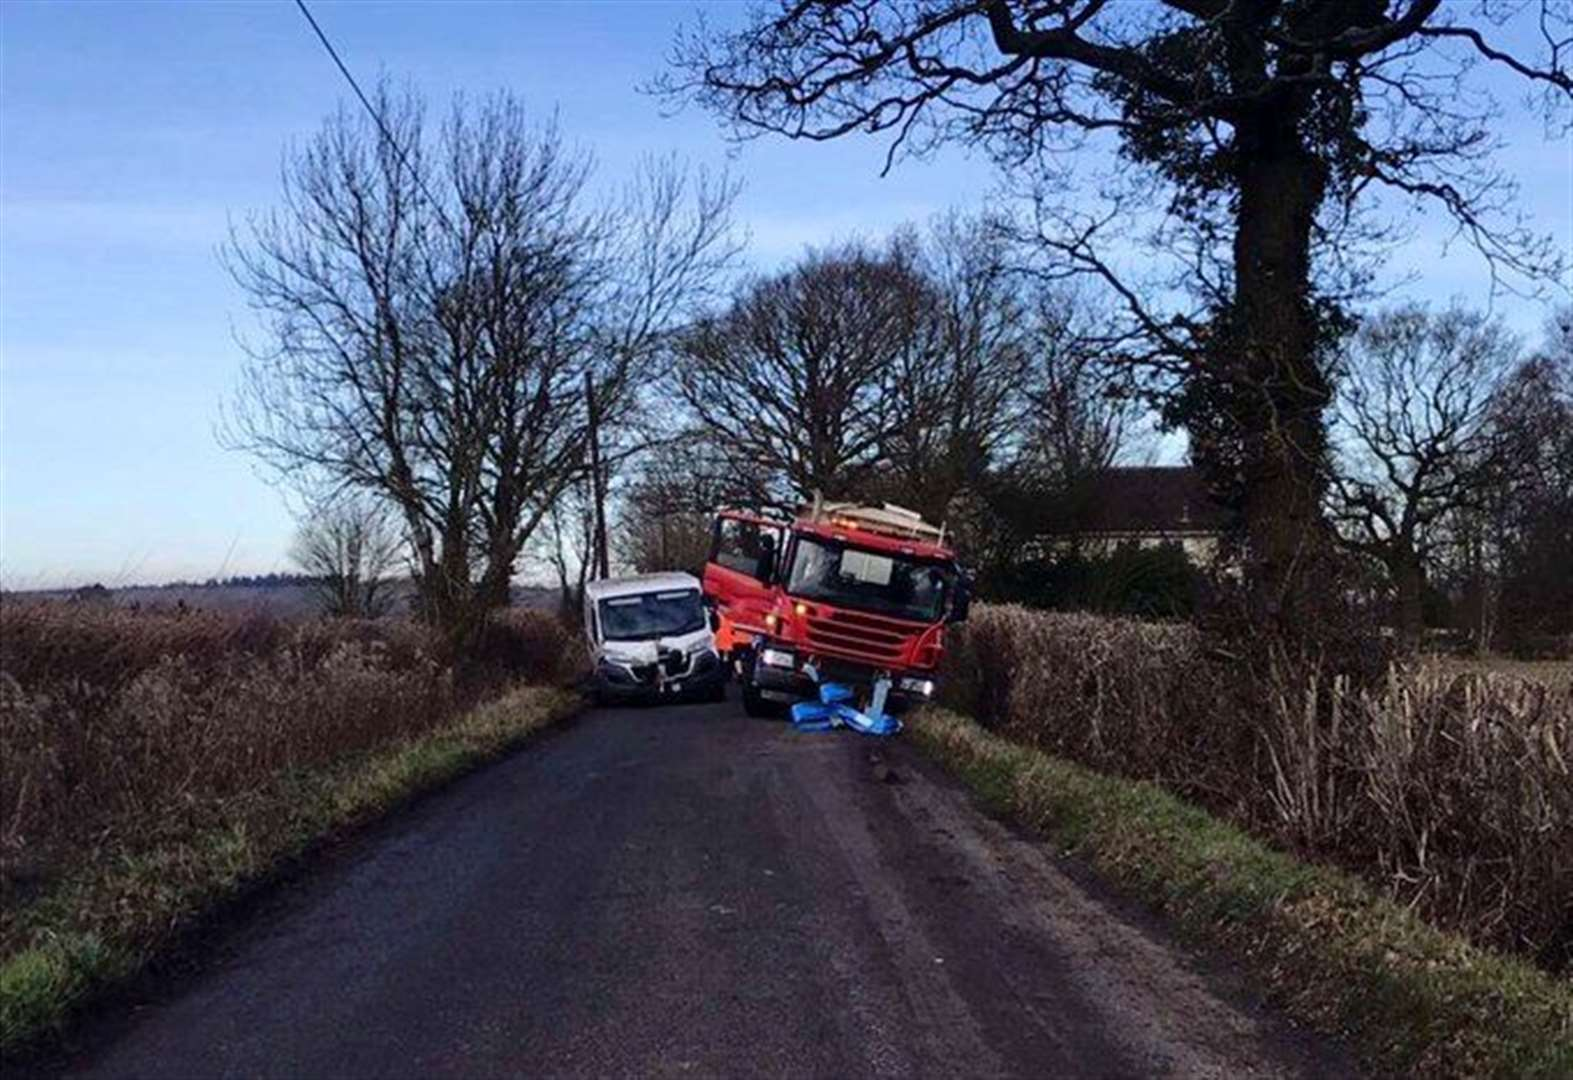 'Expensive mistake' blocks road near Bury